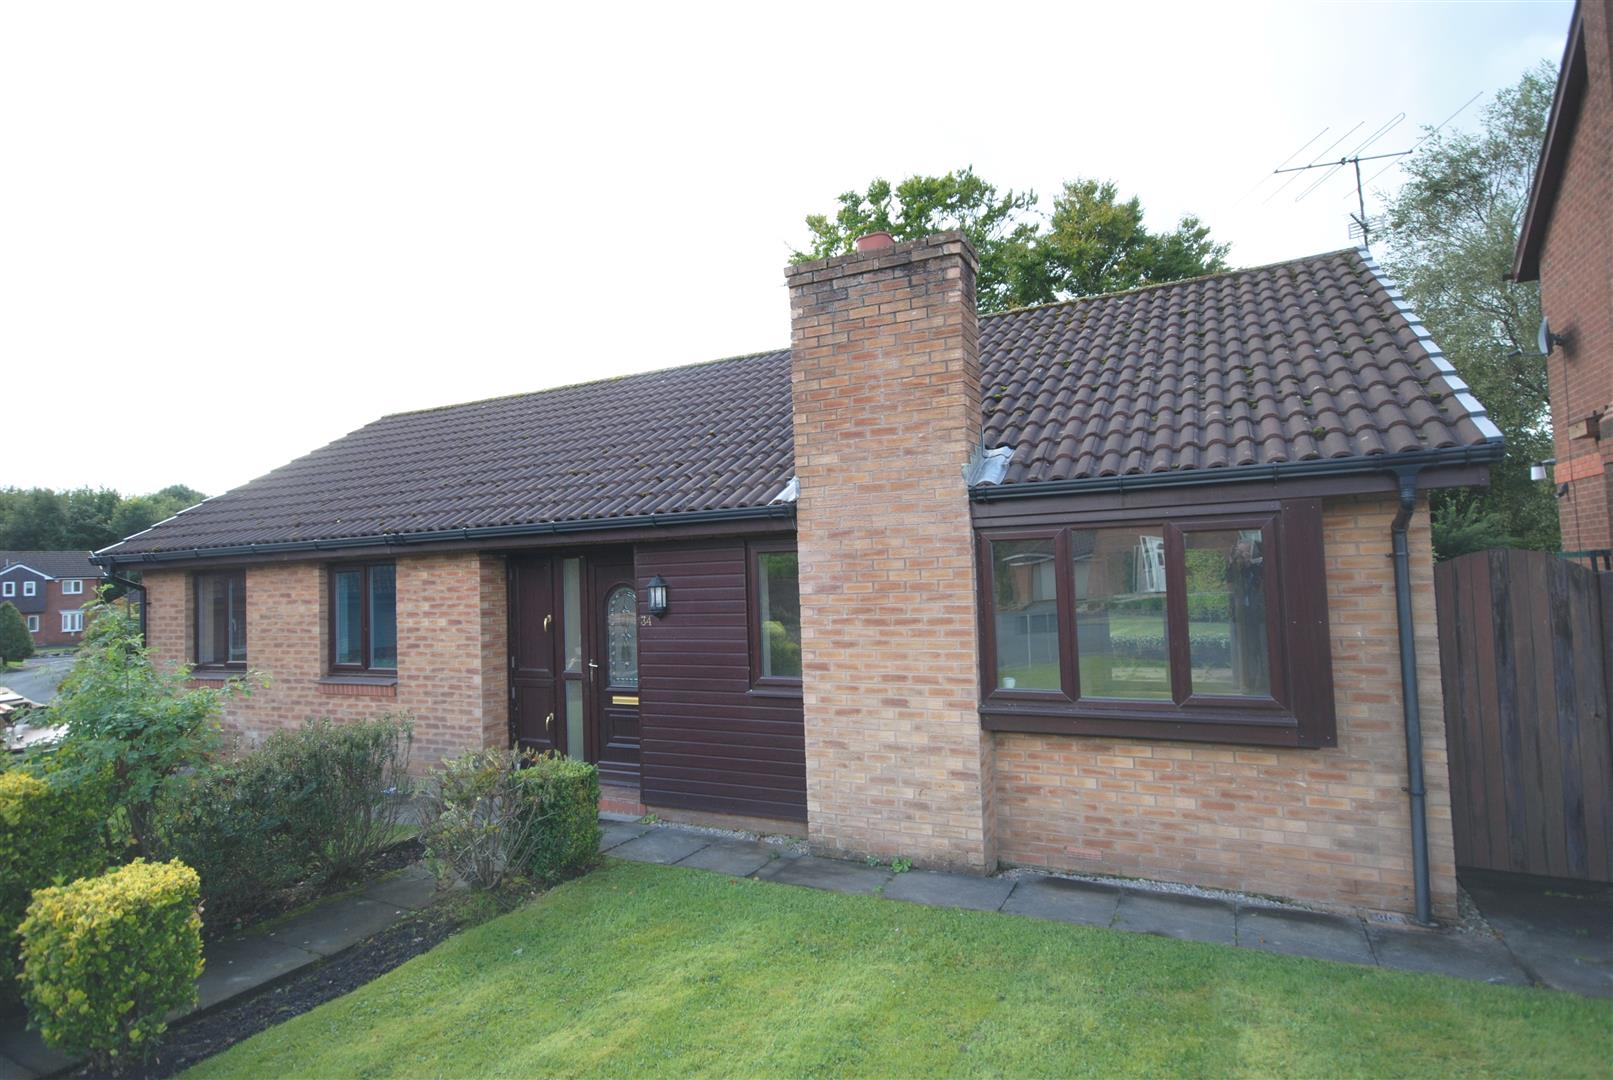 3 Bedrooms Detached Bungalow for sale in Kingshill Court, Standish, Wigan